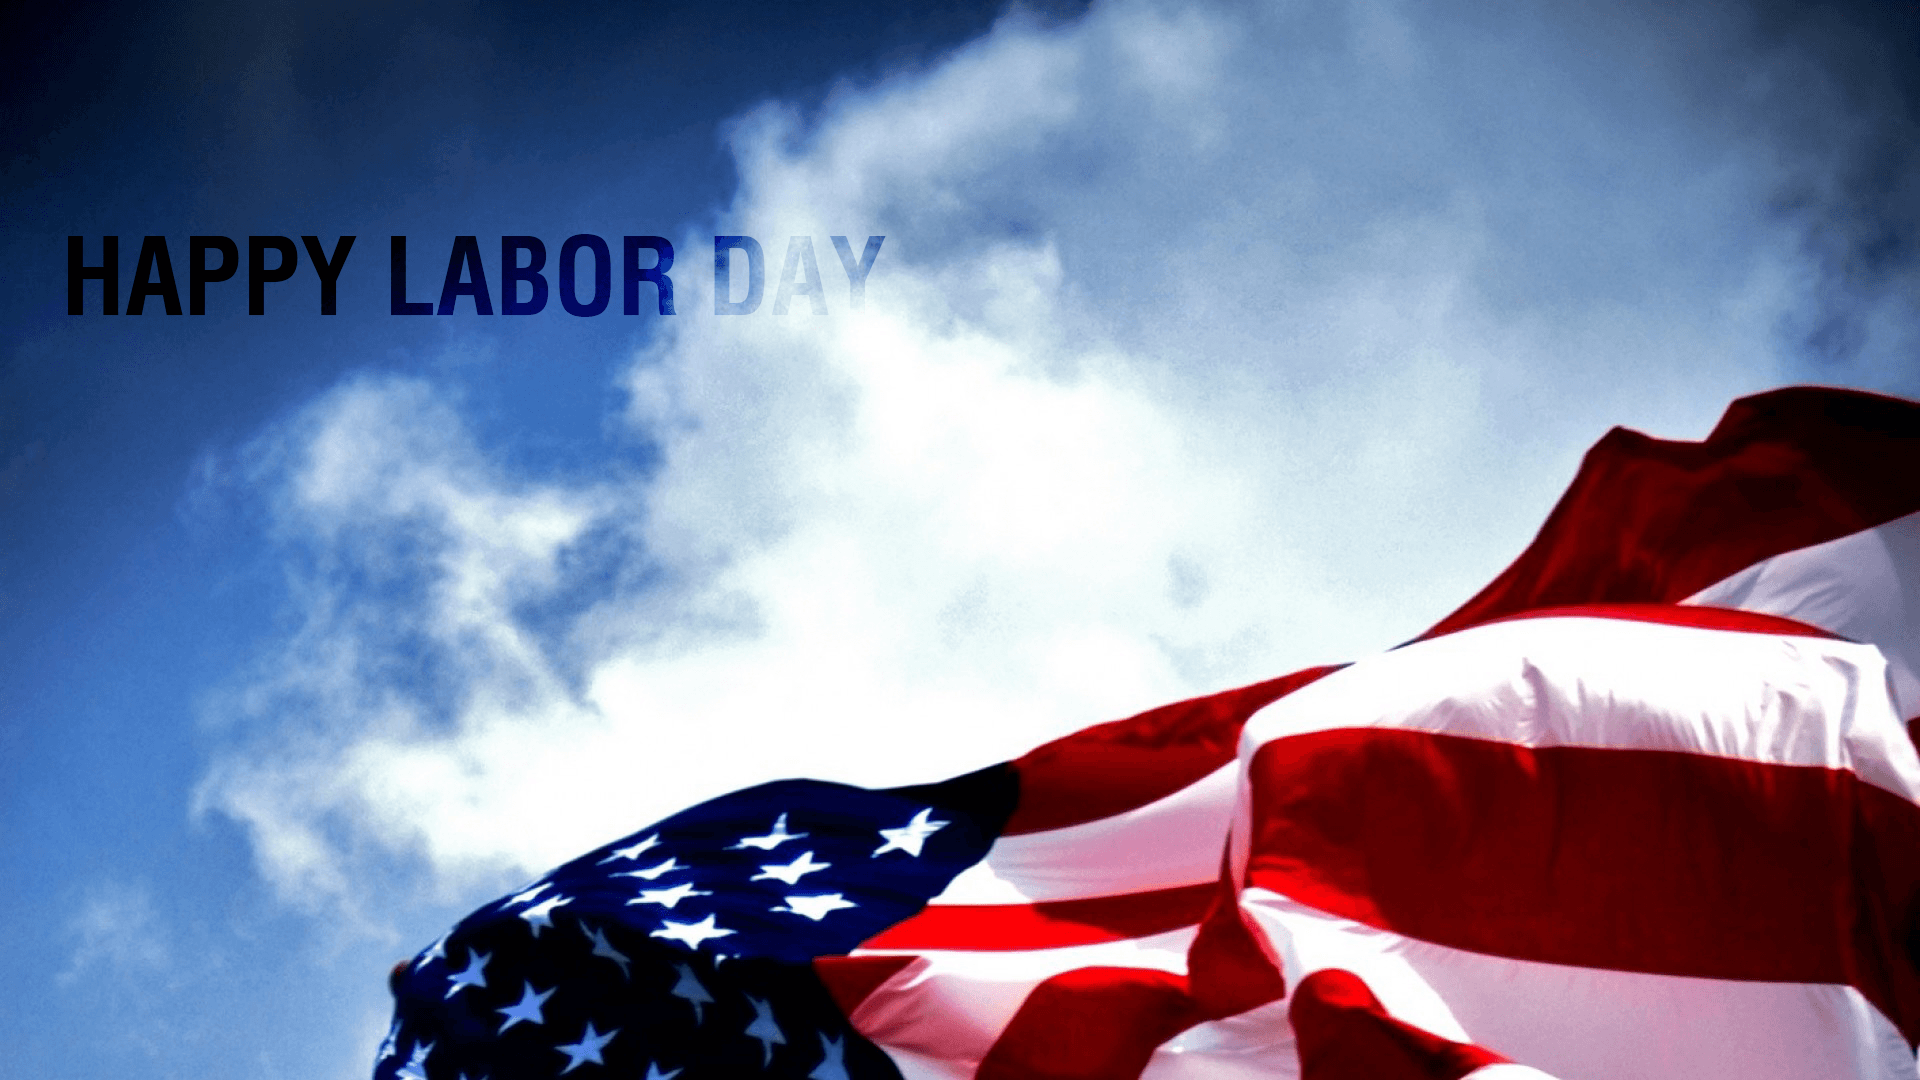 Labor Day HD Wallpapers - HD Images, HD Pictures, Backgrounds ...